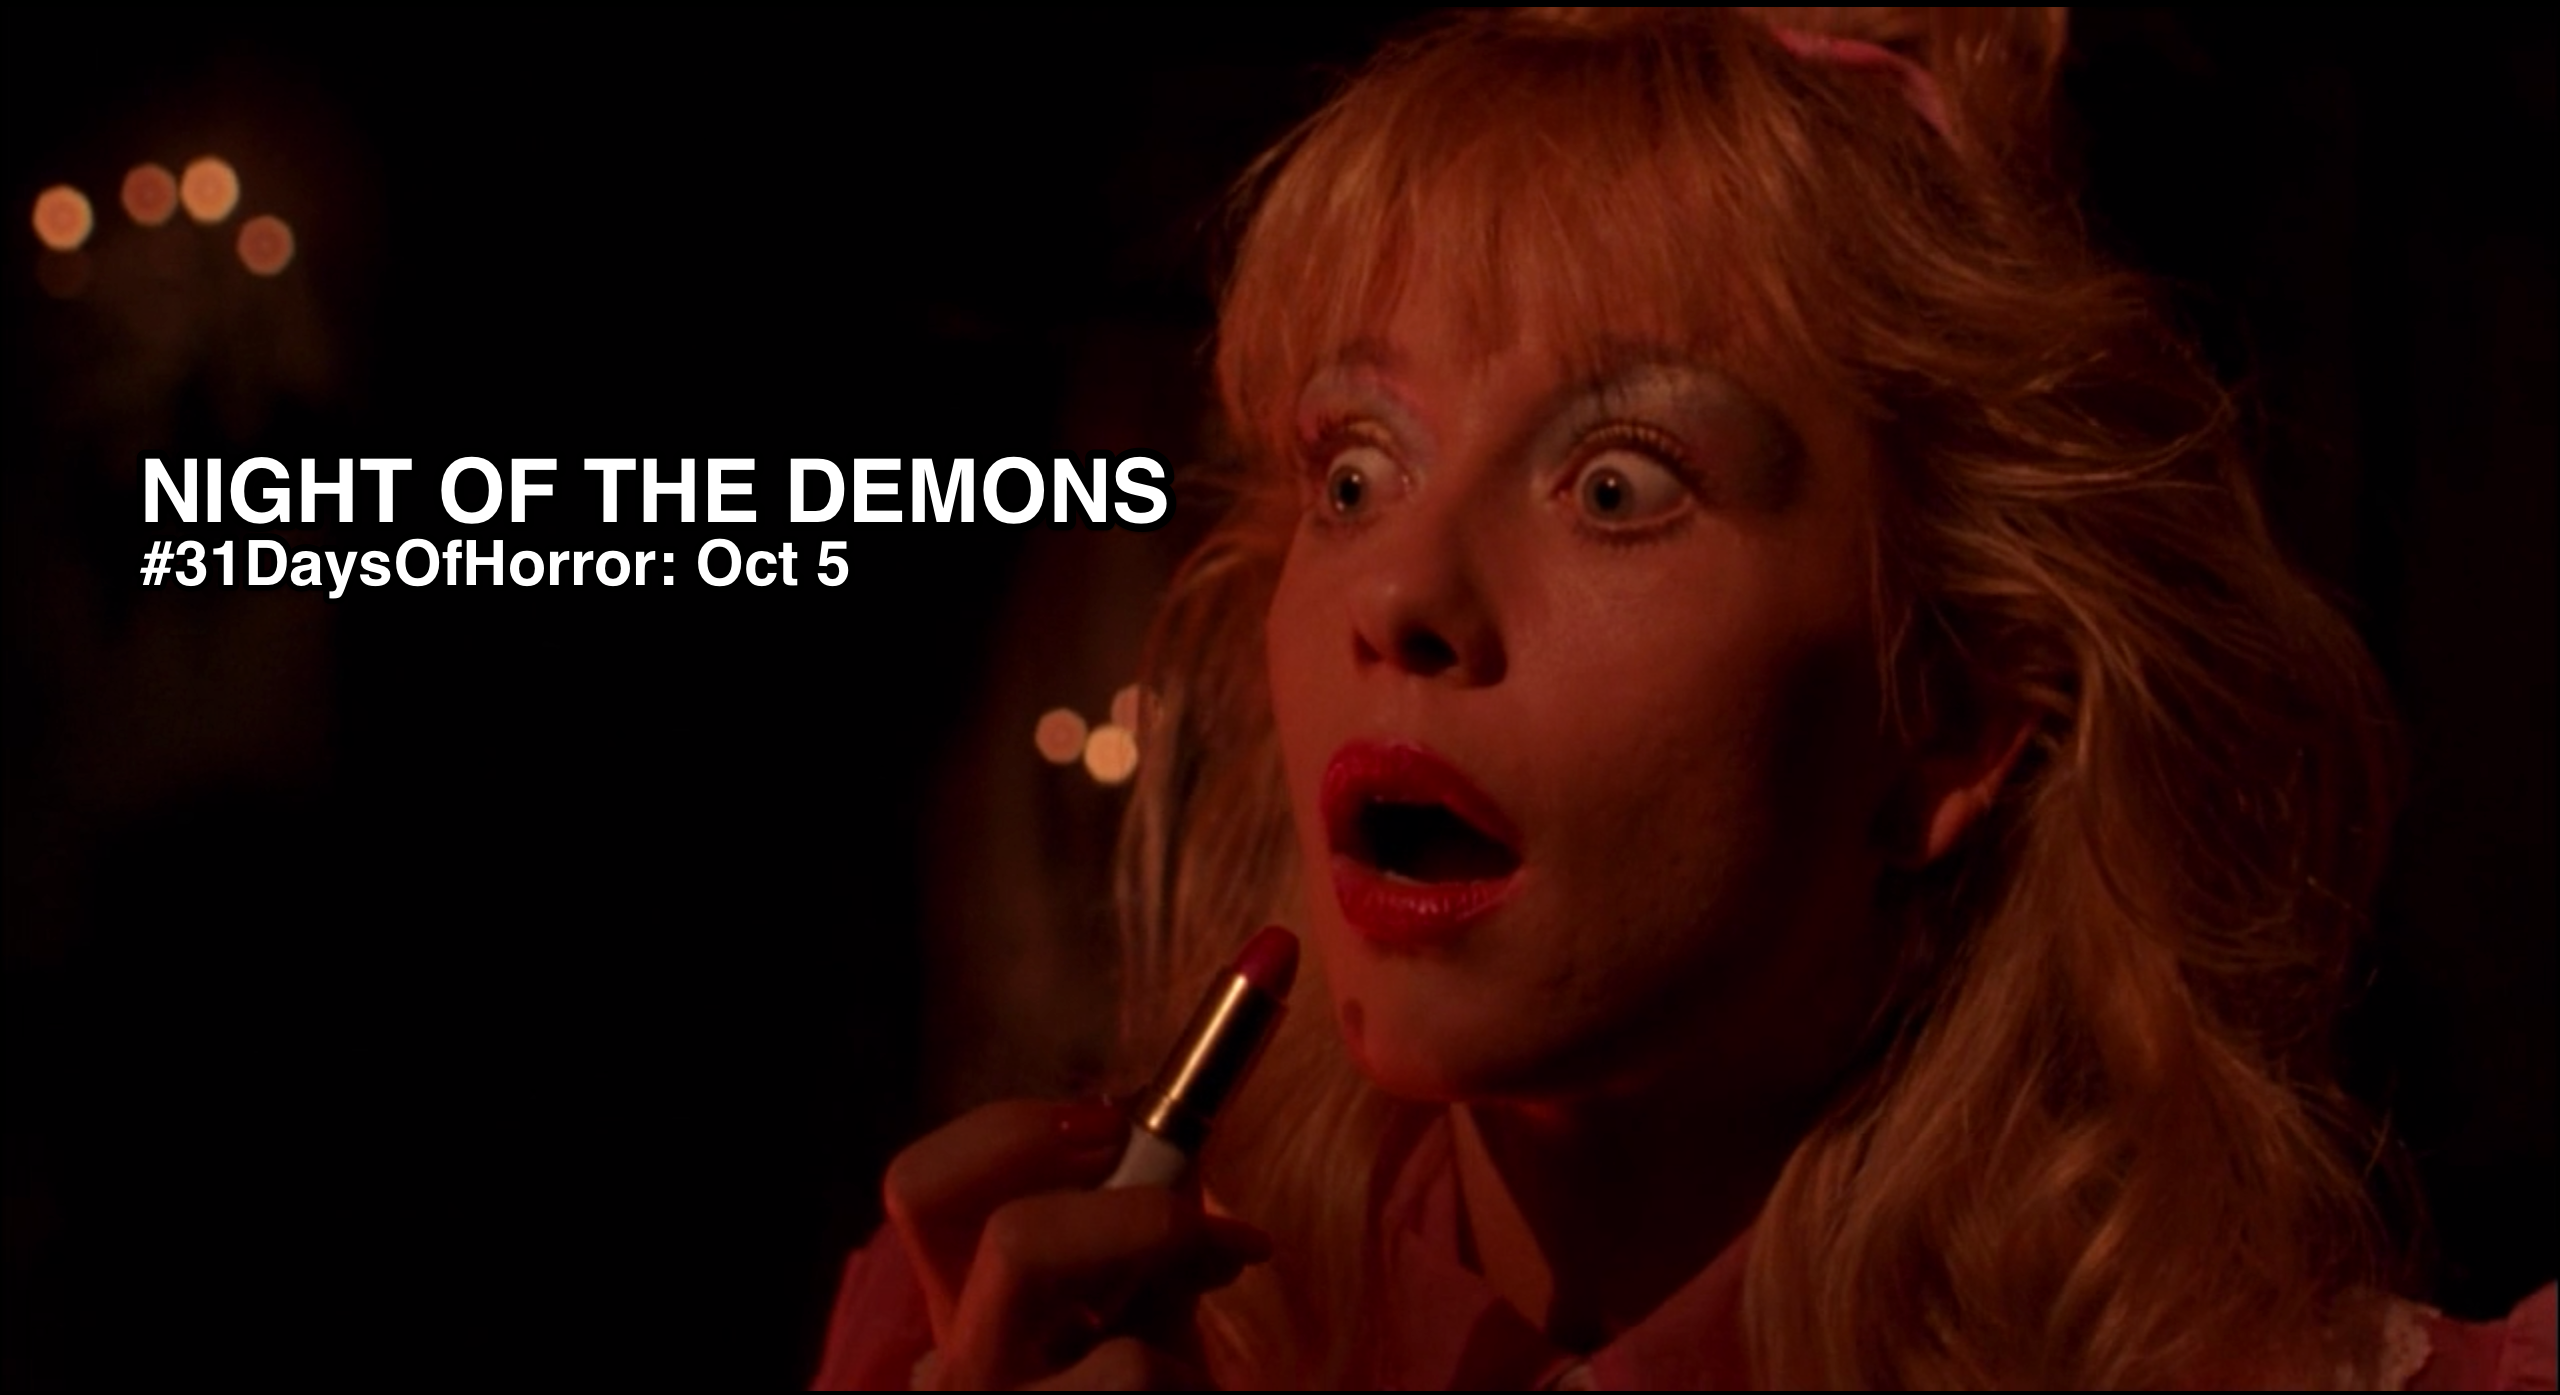 'NIGHT OF THE DEMONS (1988)' deserves more recognition as a camp masterpiece